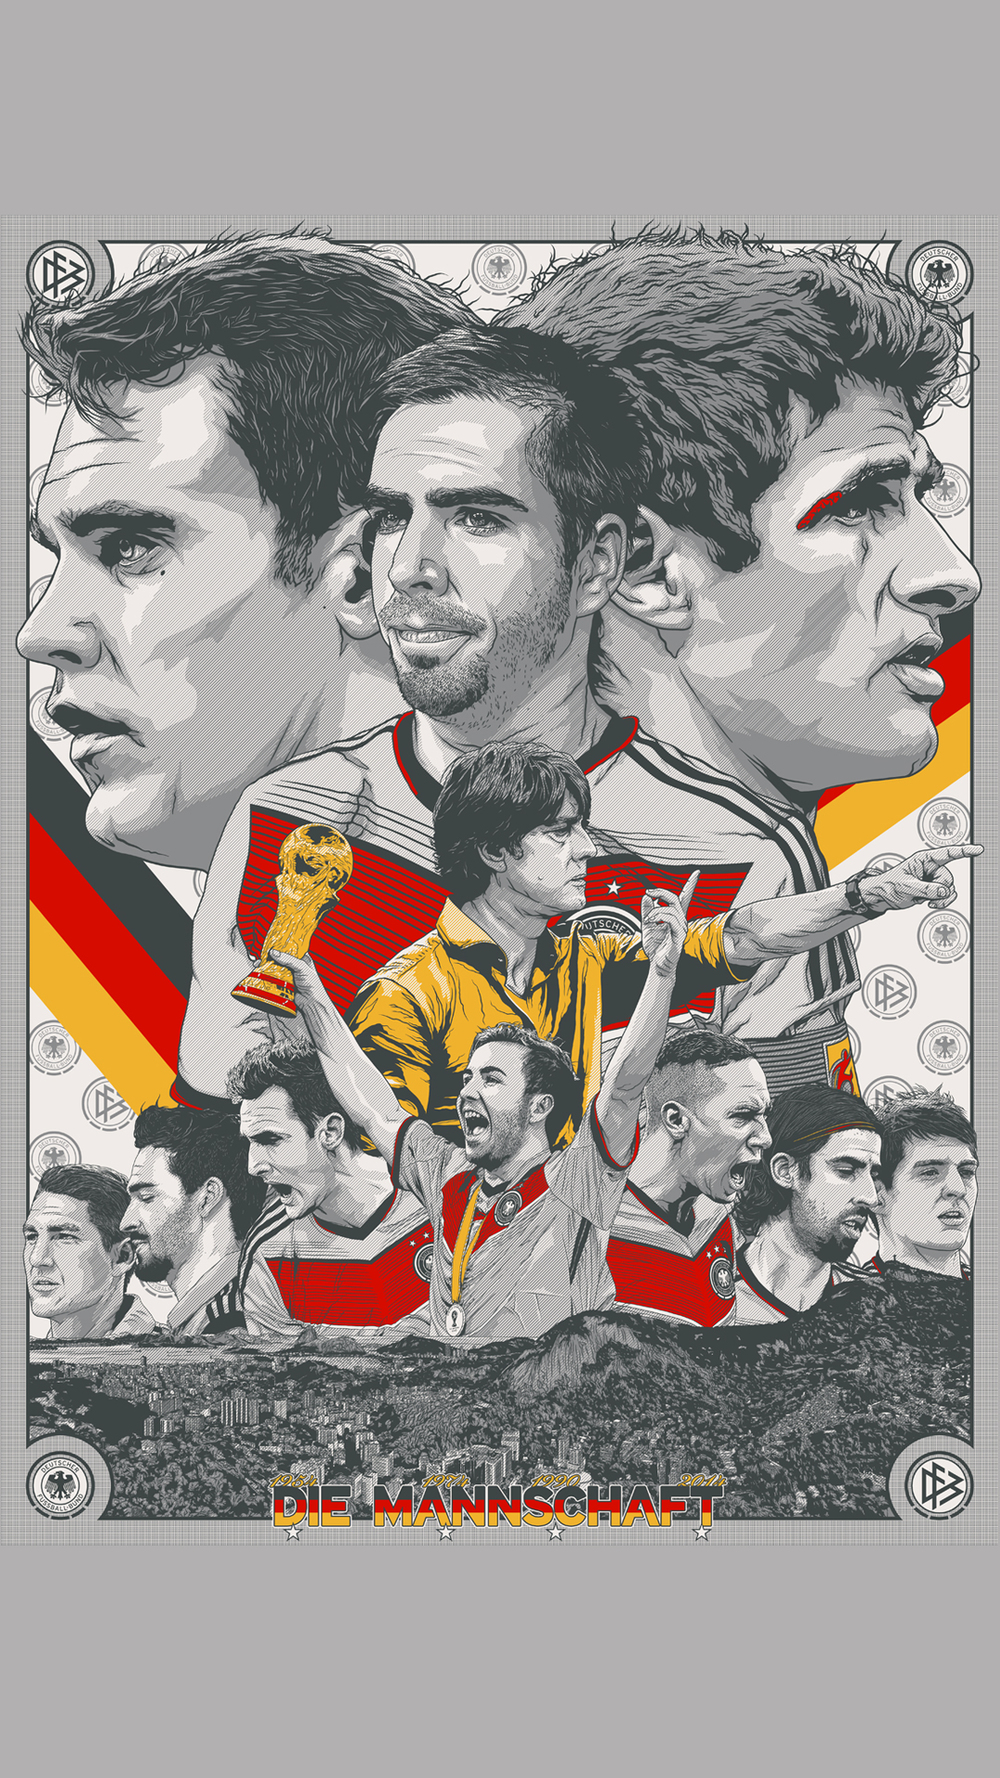 Die-Mannschaft-iPhone-6-Variant-Wallpaper.jpg